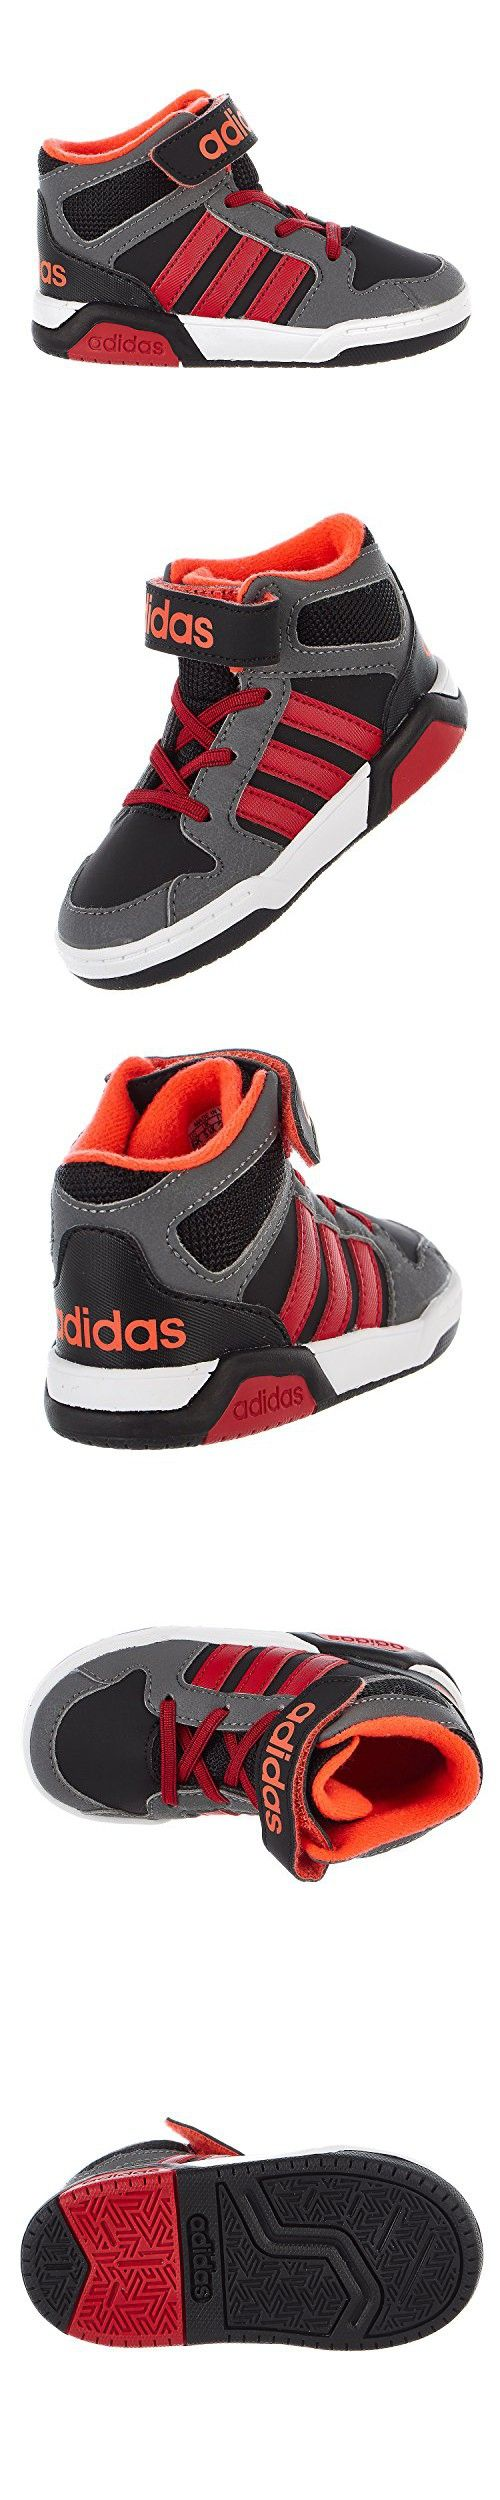 31ce6ebe5be Adidas NEO Boys  BB9TIS Mid Inf Sneaker